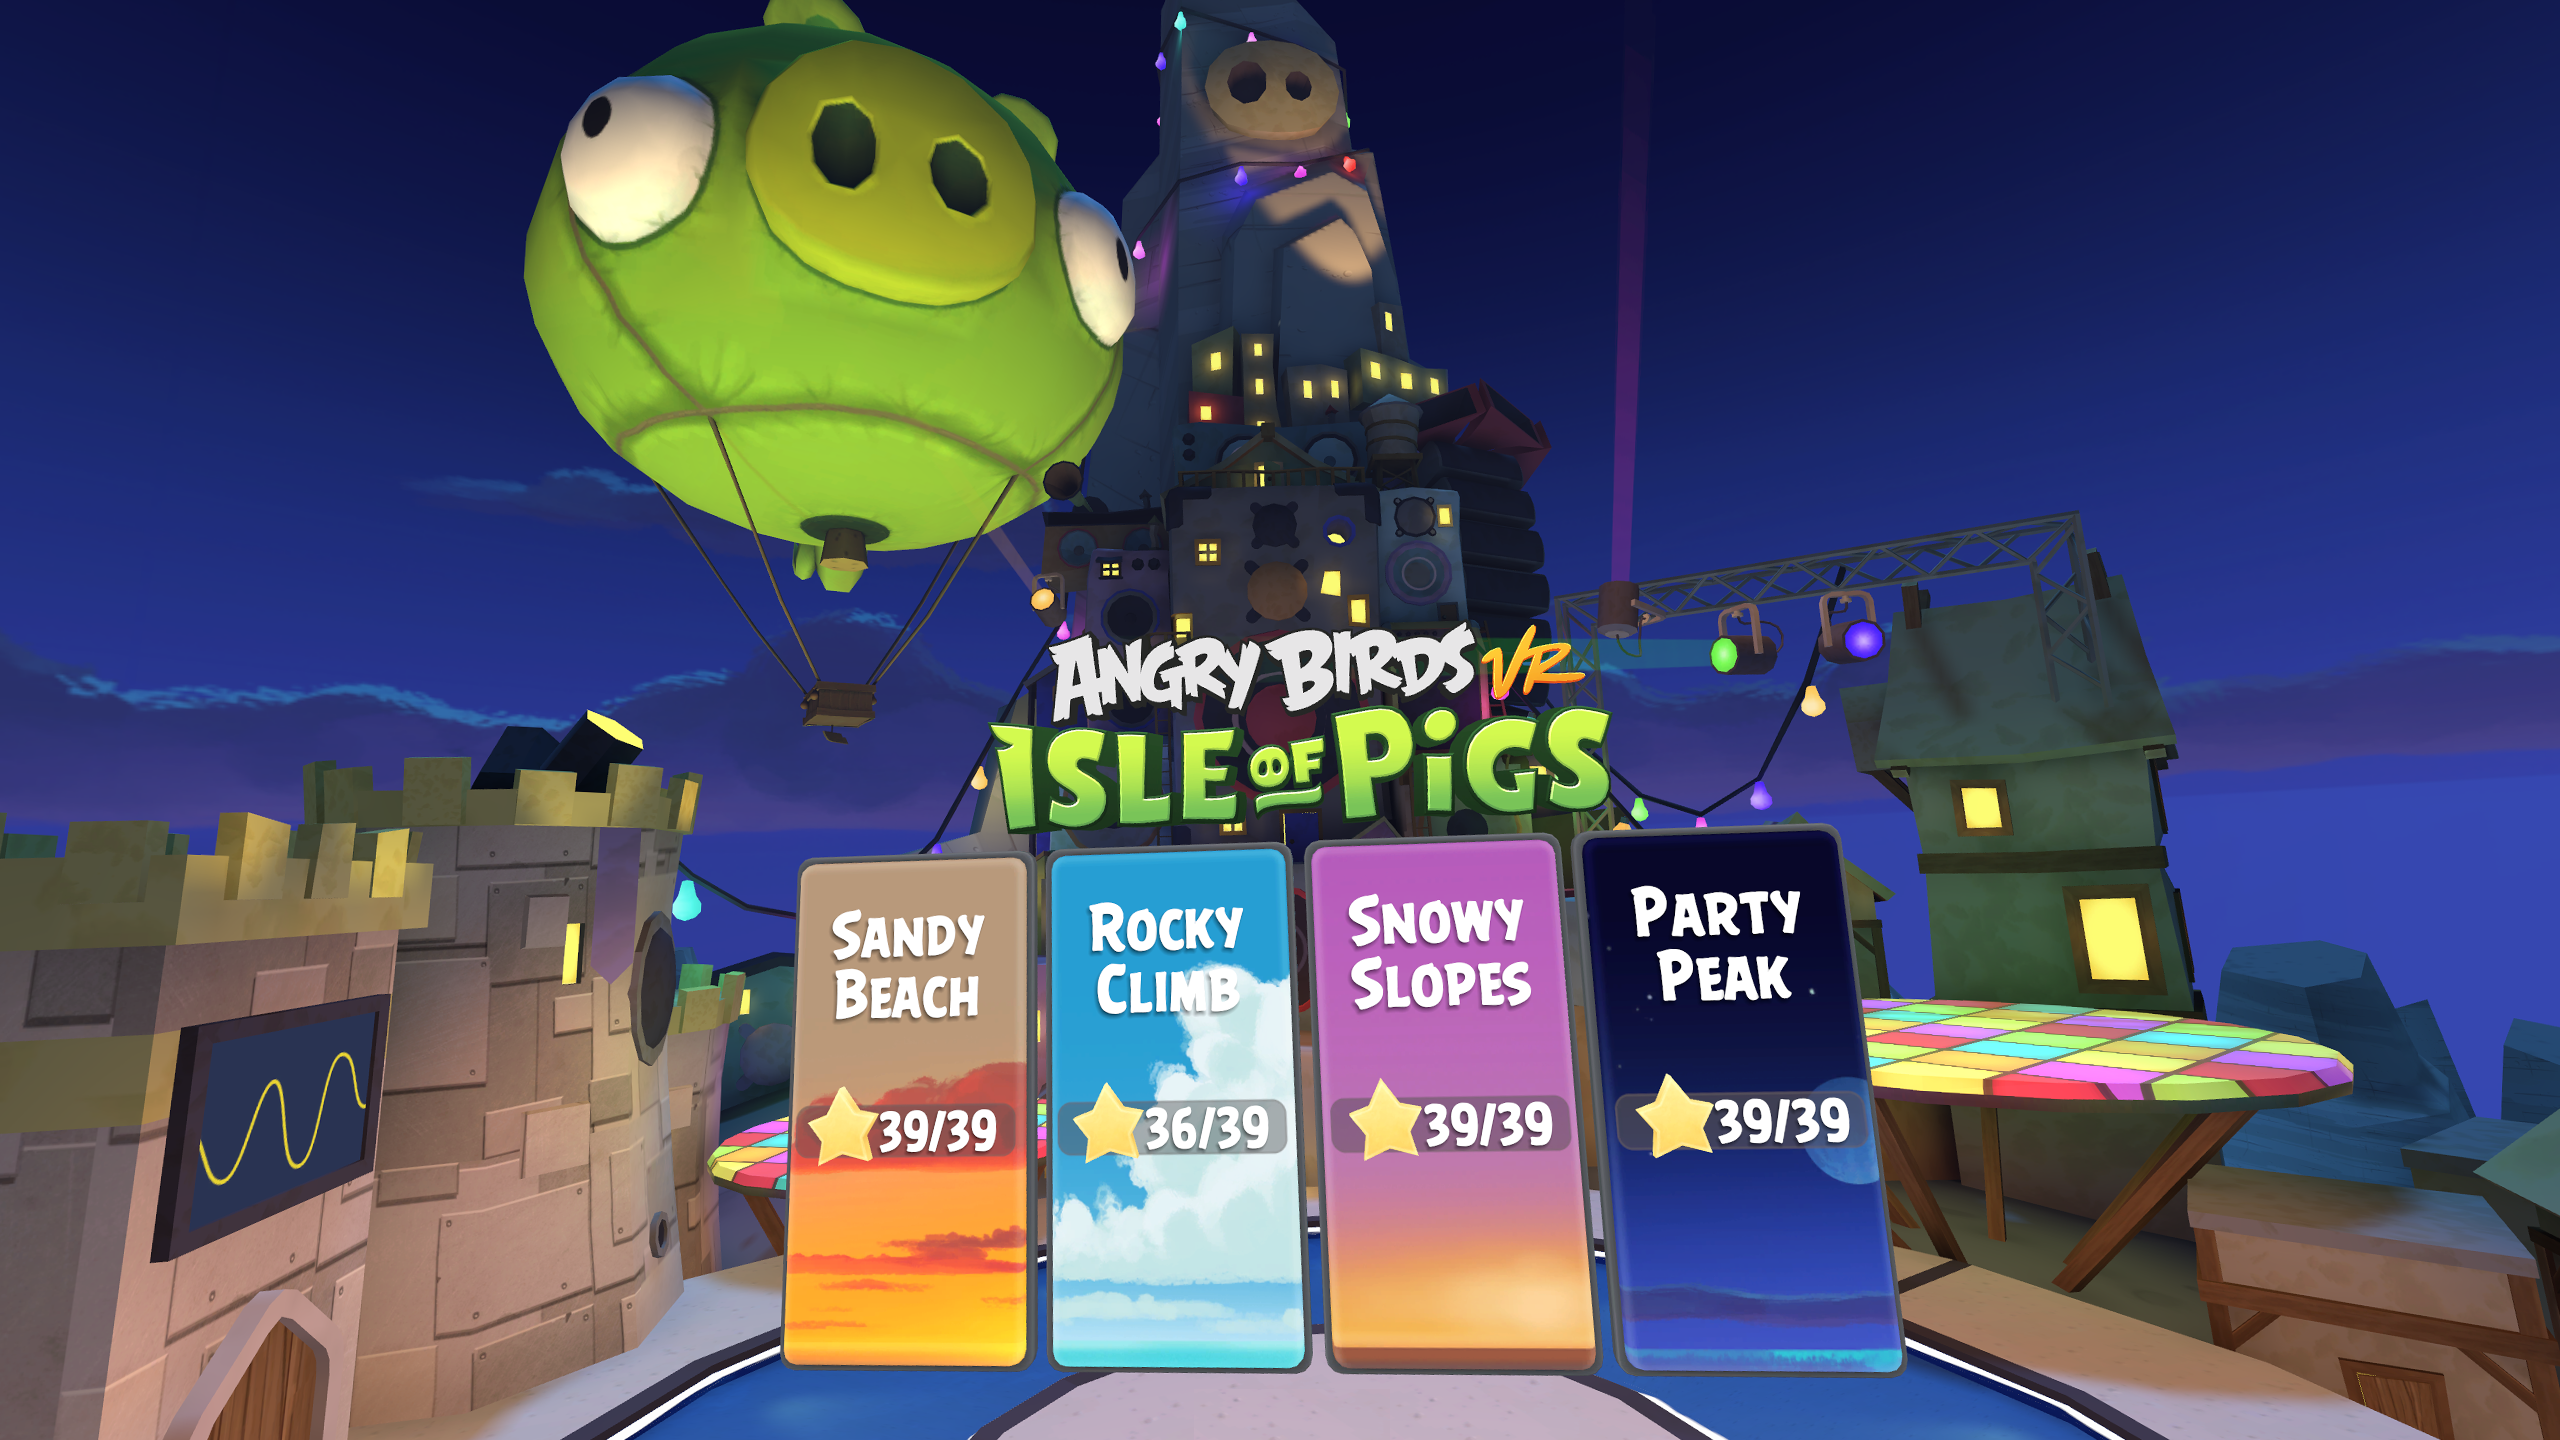 angry birds vr Party Peak